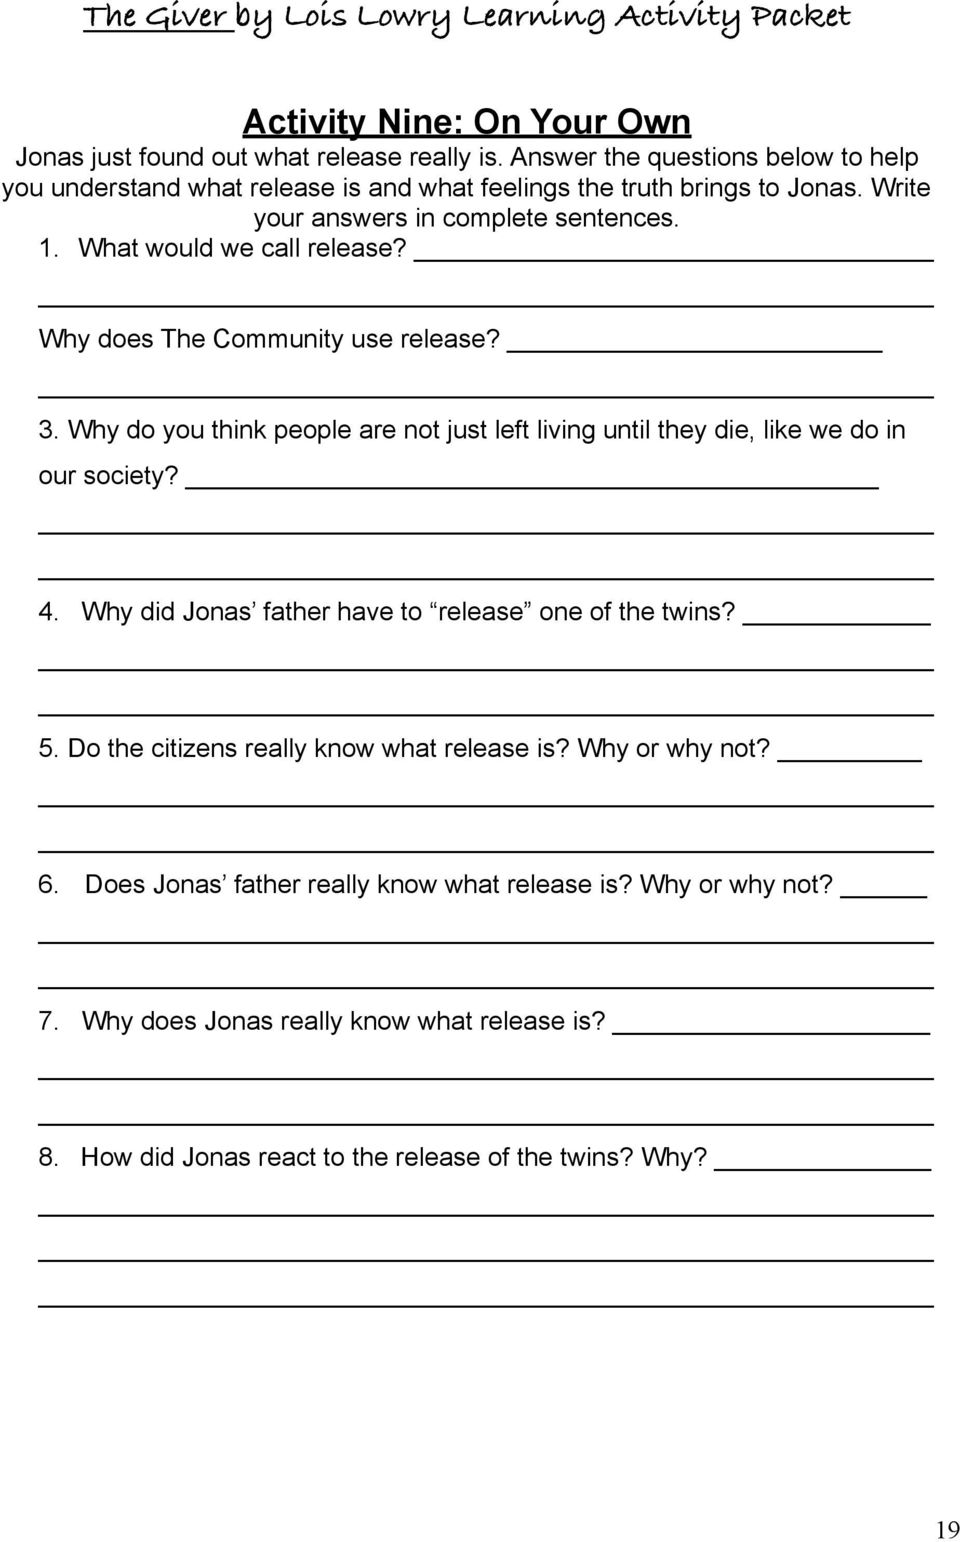 worksheet The Giver Symbolism Worksheet the giver by lois lowry learning activity packet pdf why does community use release 3 why